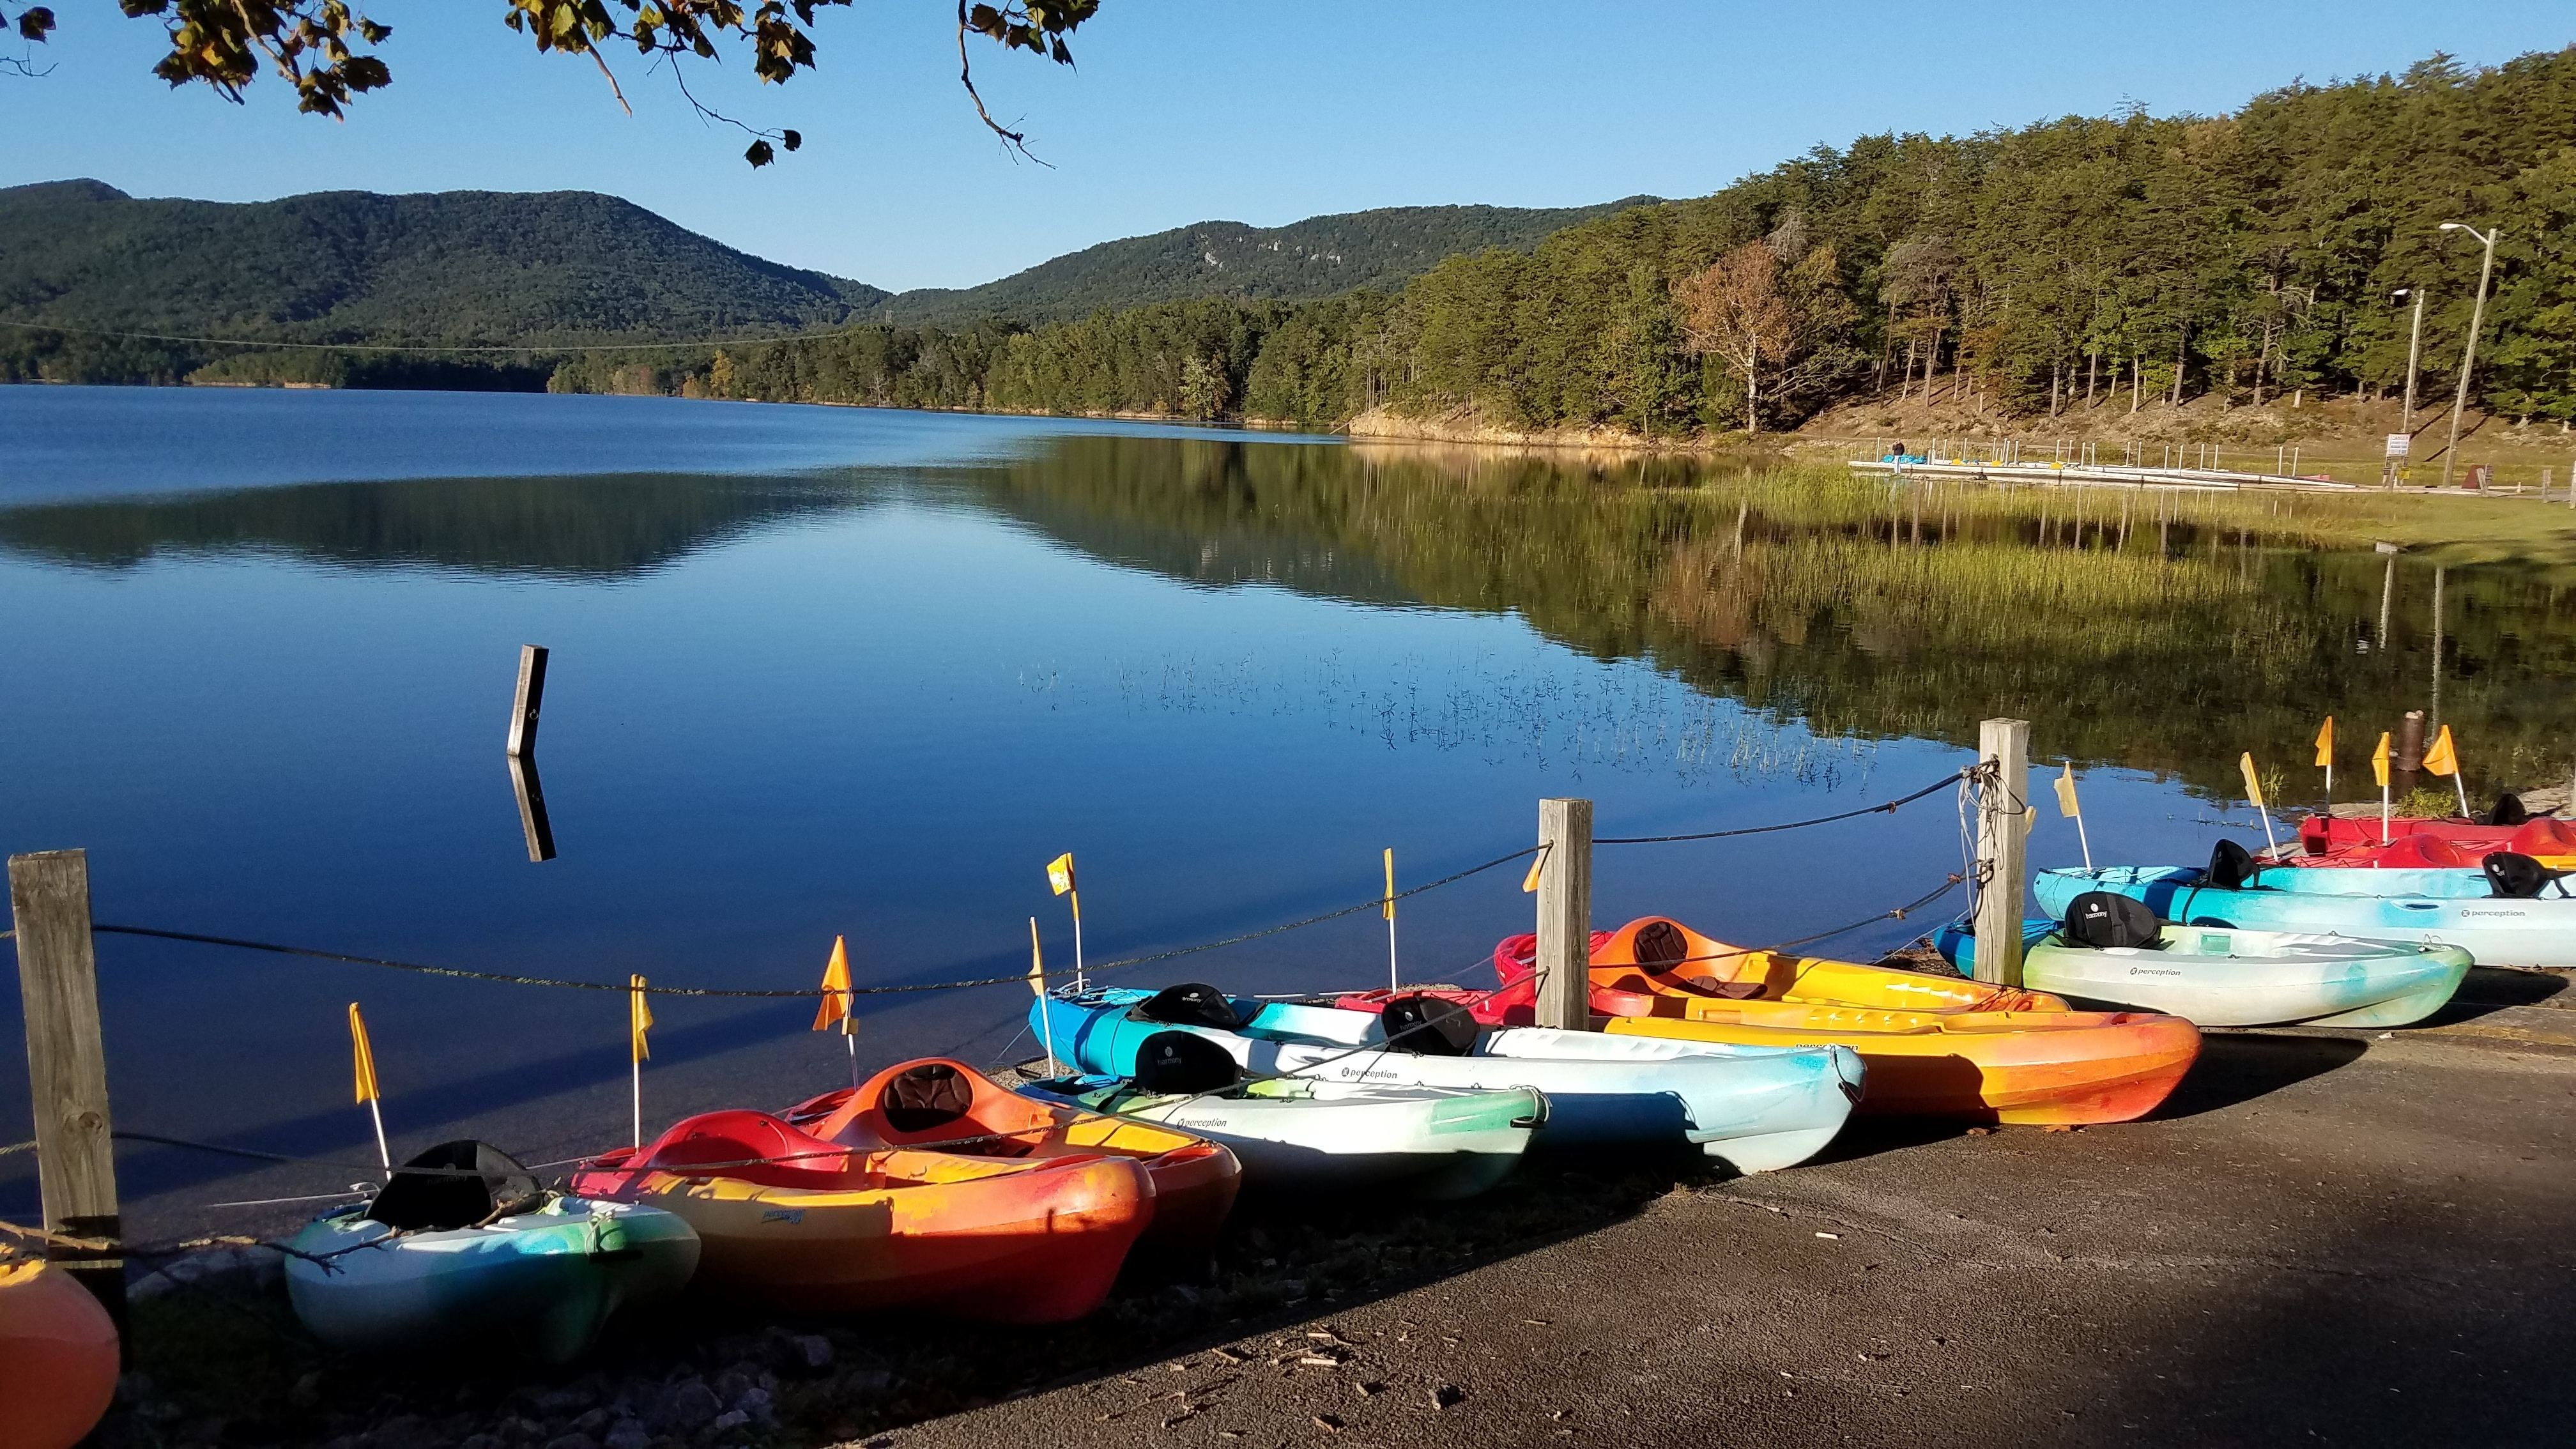 Weather permitting, kayaks are available for rent at the Carvins Cove Boat Landing April 1 - October 31.  Please see www.westernavawater.org/carvinscove for rental fees and current information.